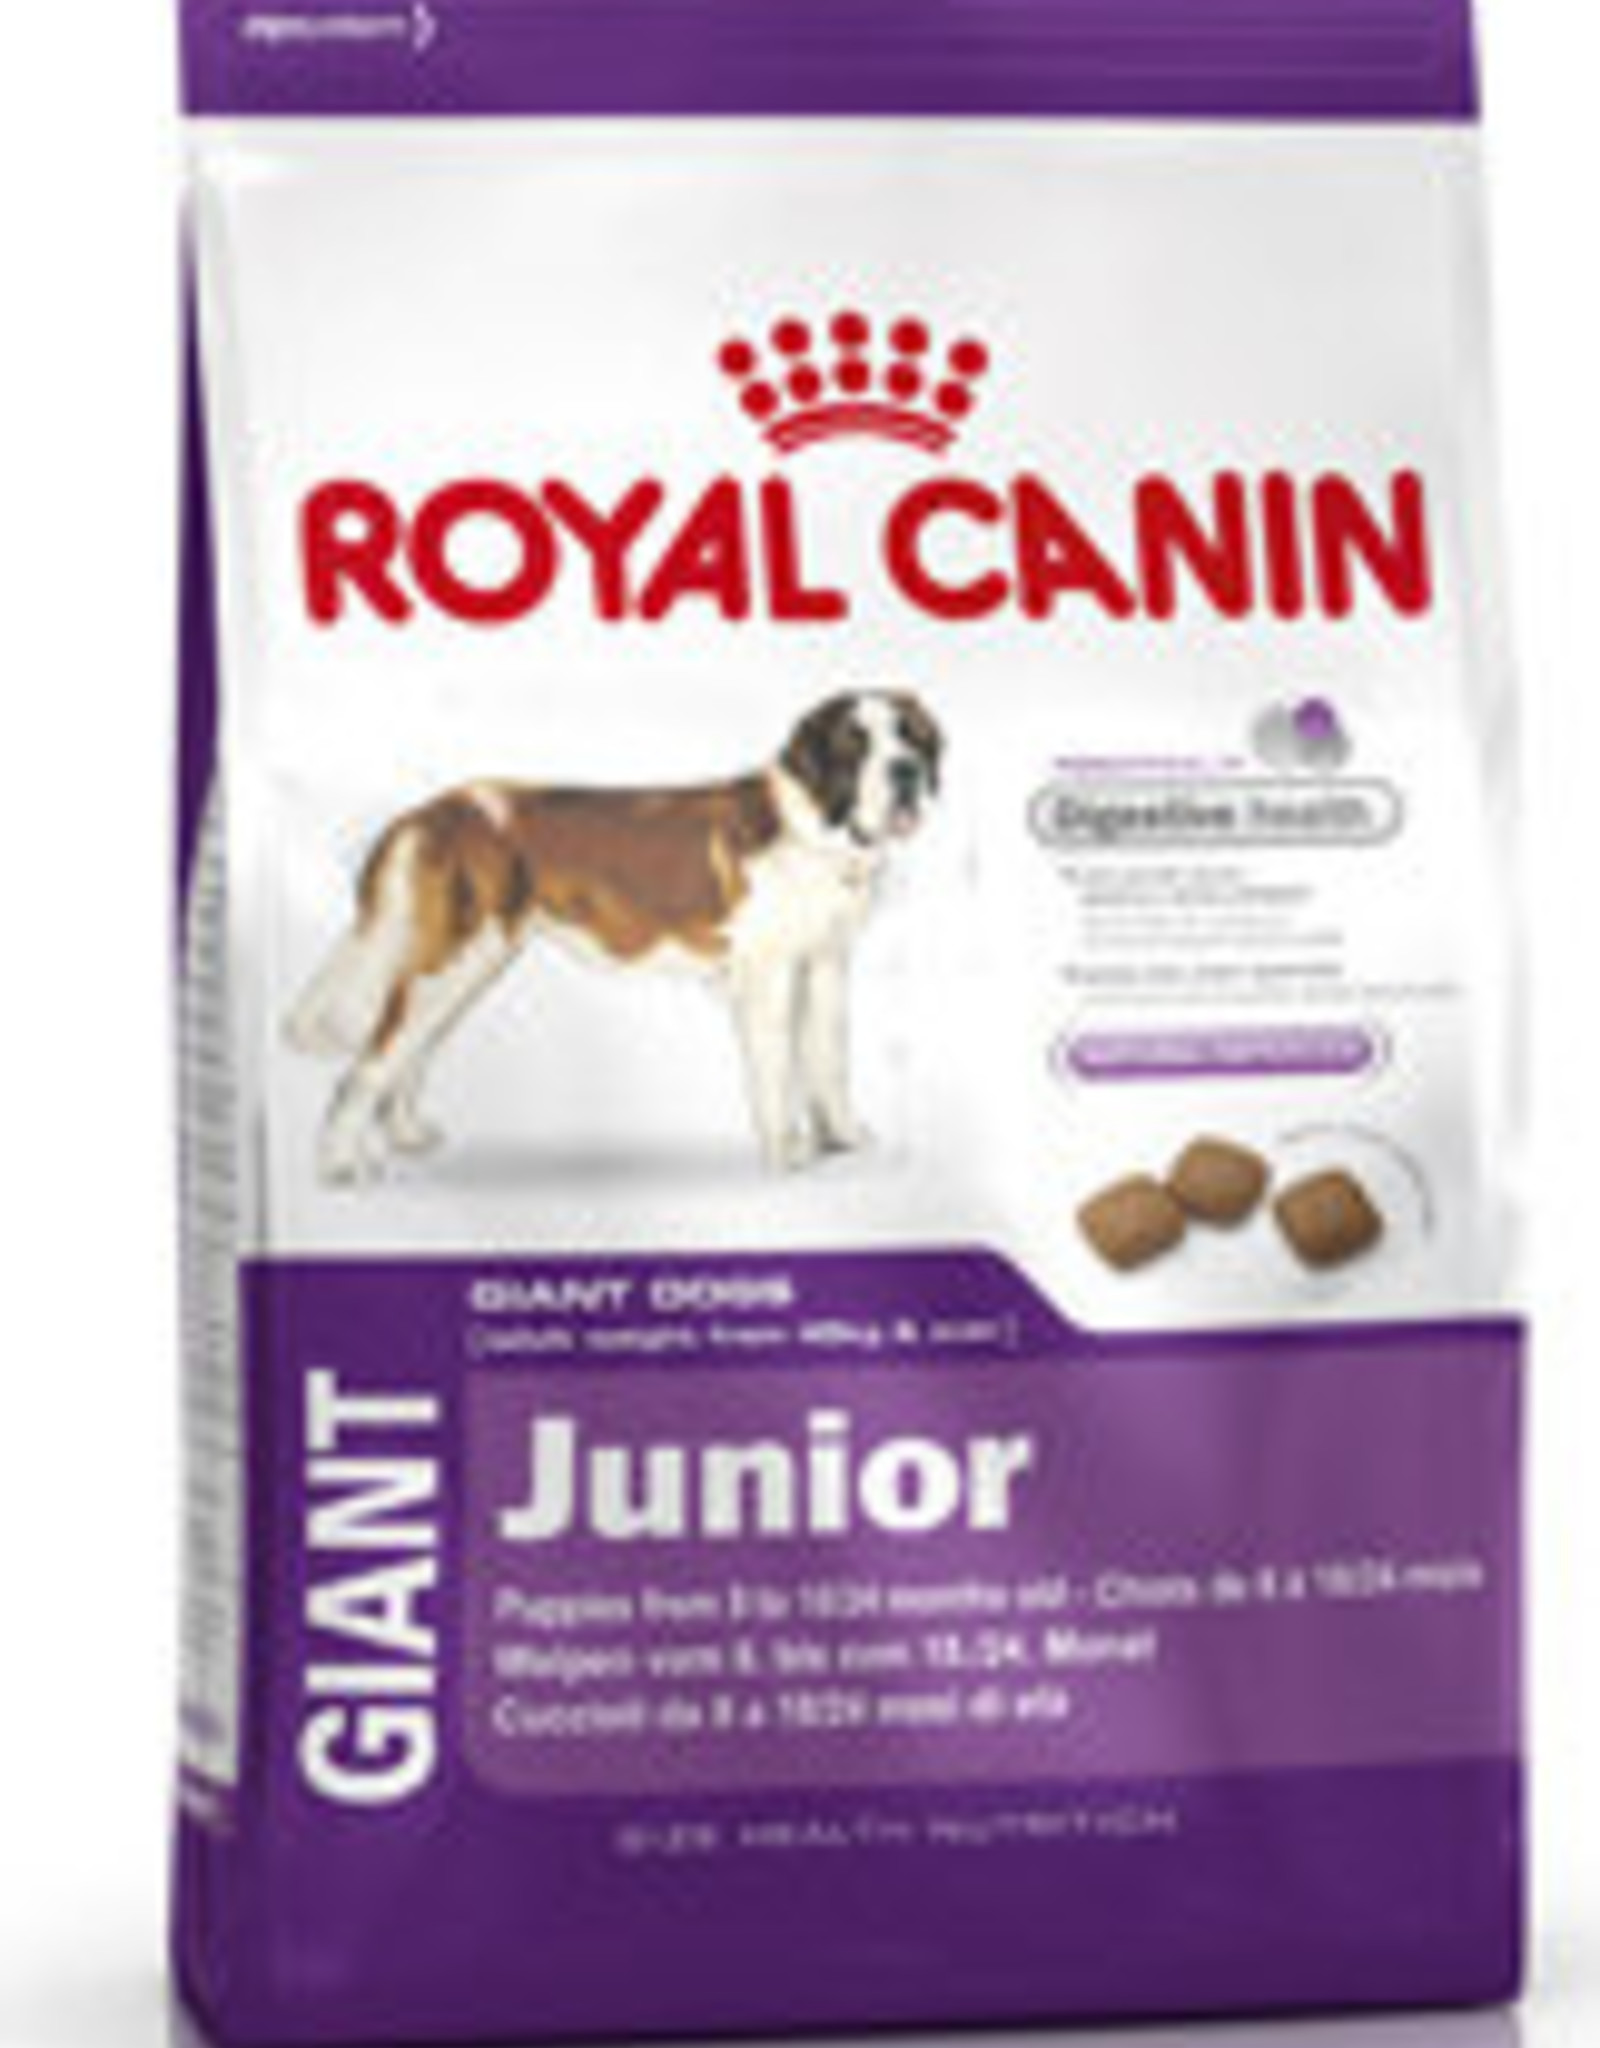 Royal Canin Royal Canin Shn Giant Junior Canine 4kg